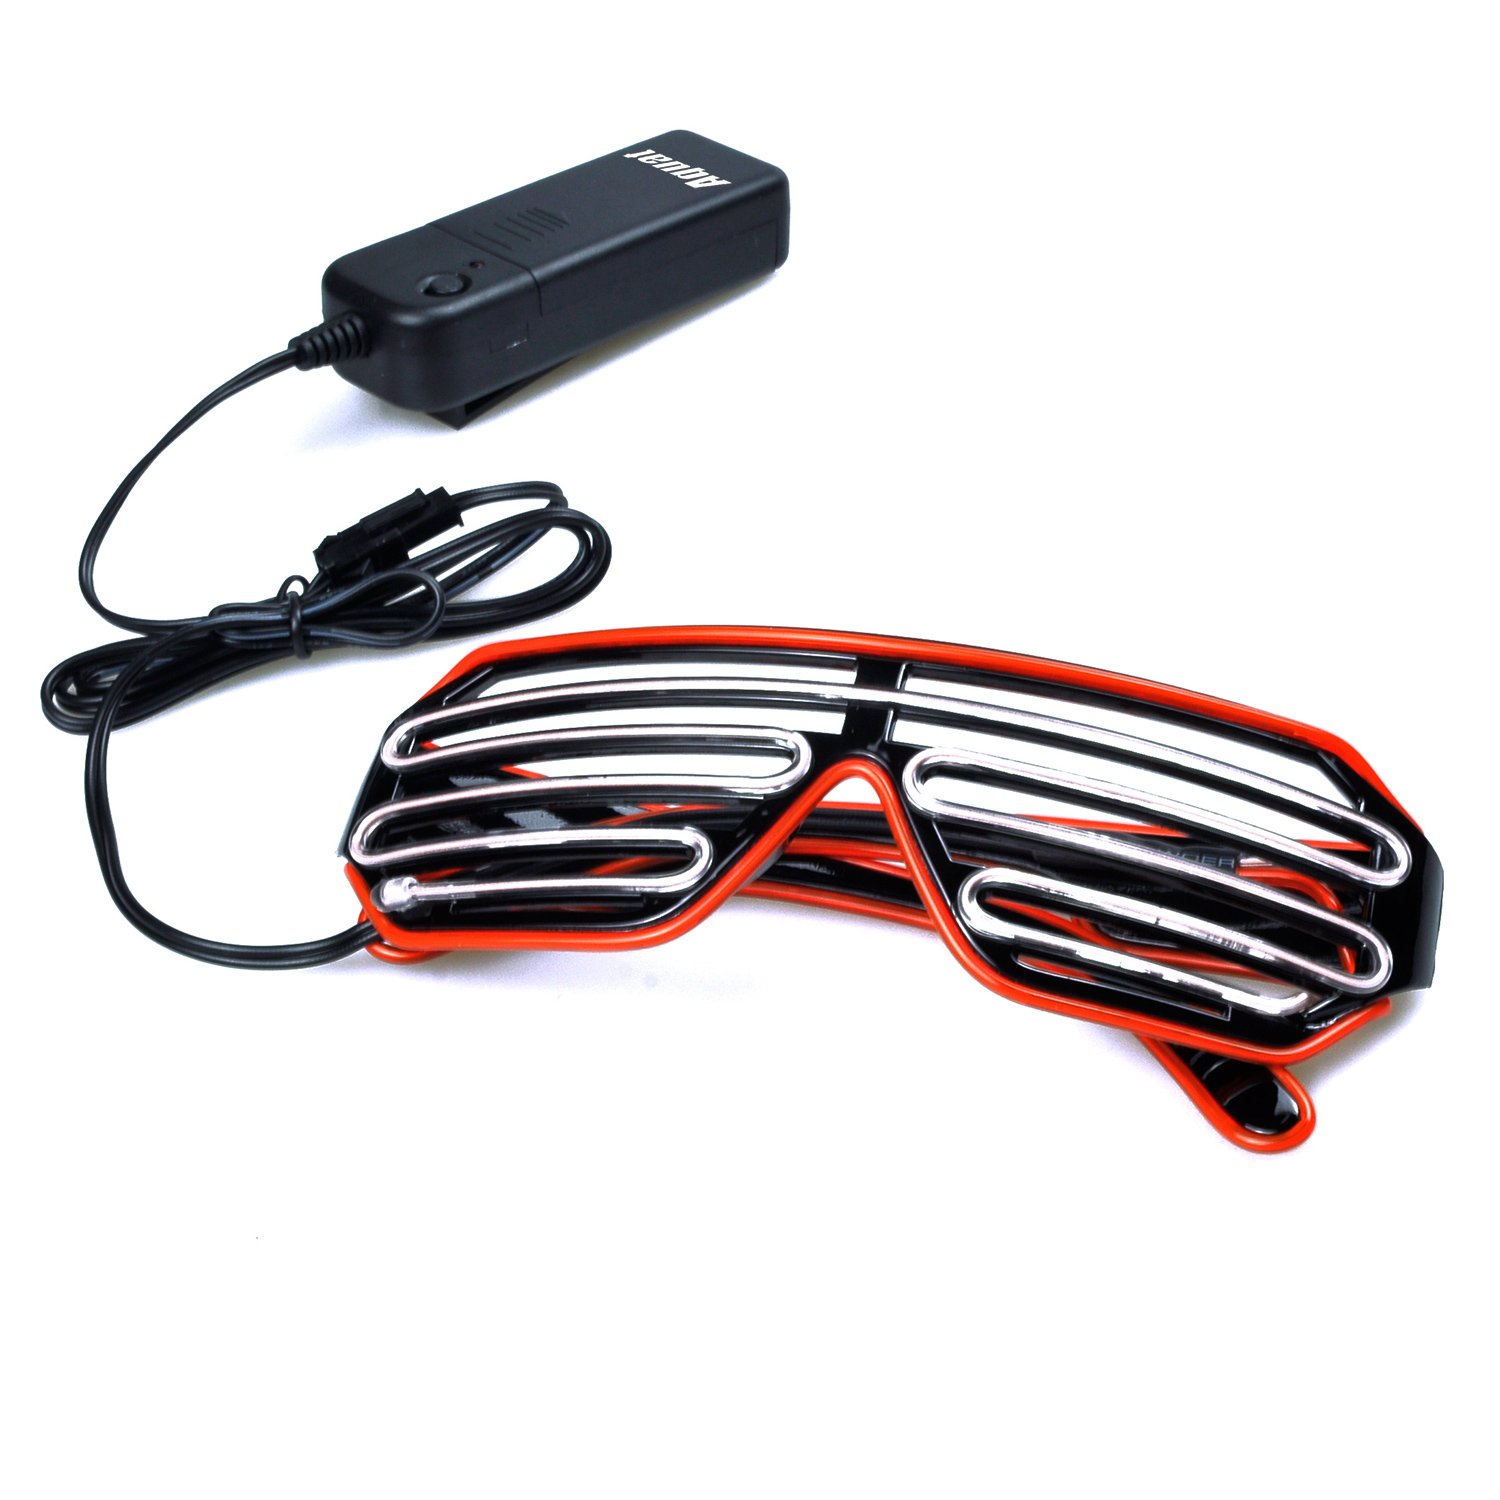 PINFOX Shutter El Wire Neon Rave Glasses Flashing LED Sunglasses Light Up Costumes for 80s Party RB03 EDM Blue + Orange